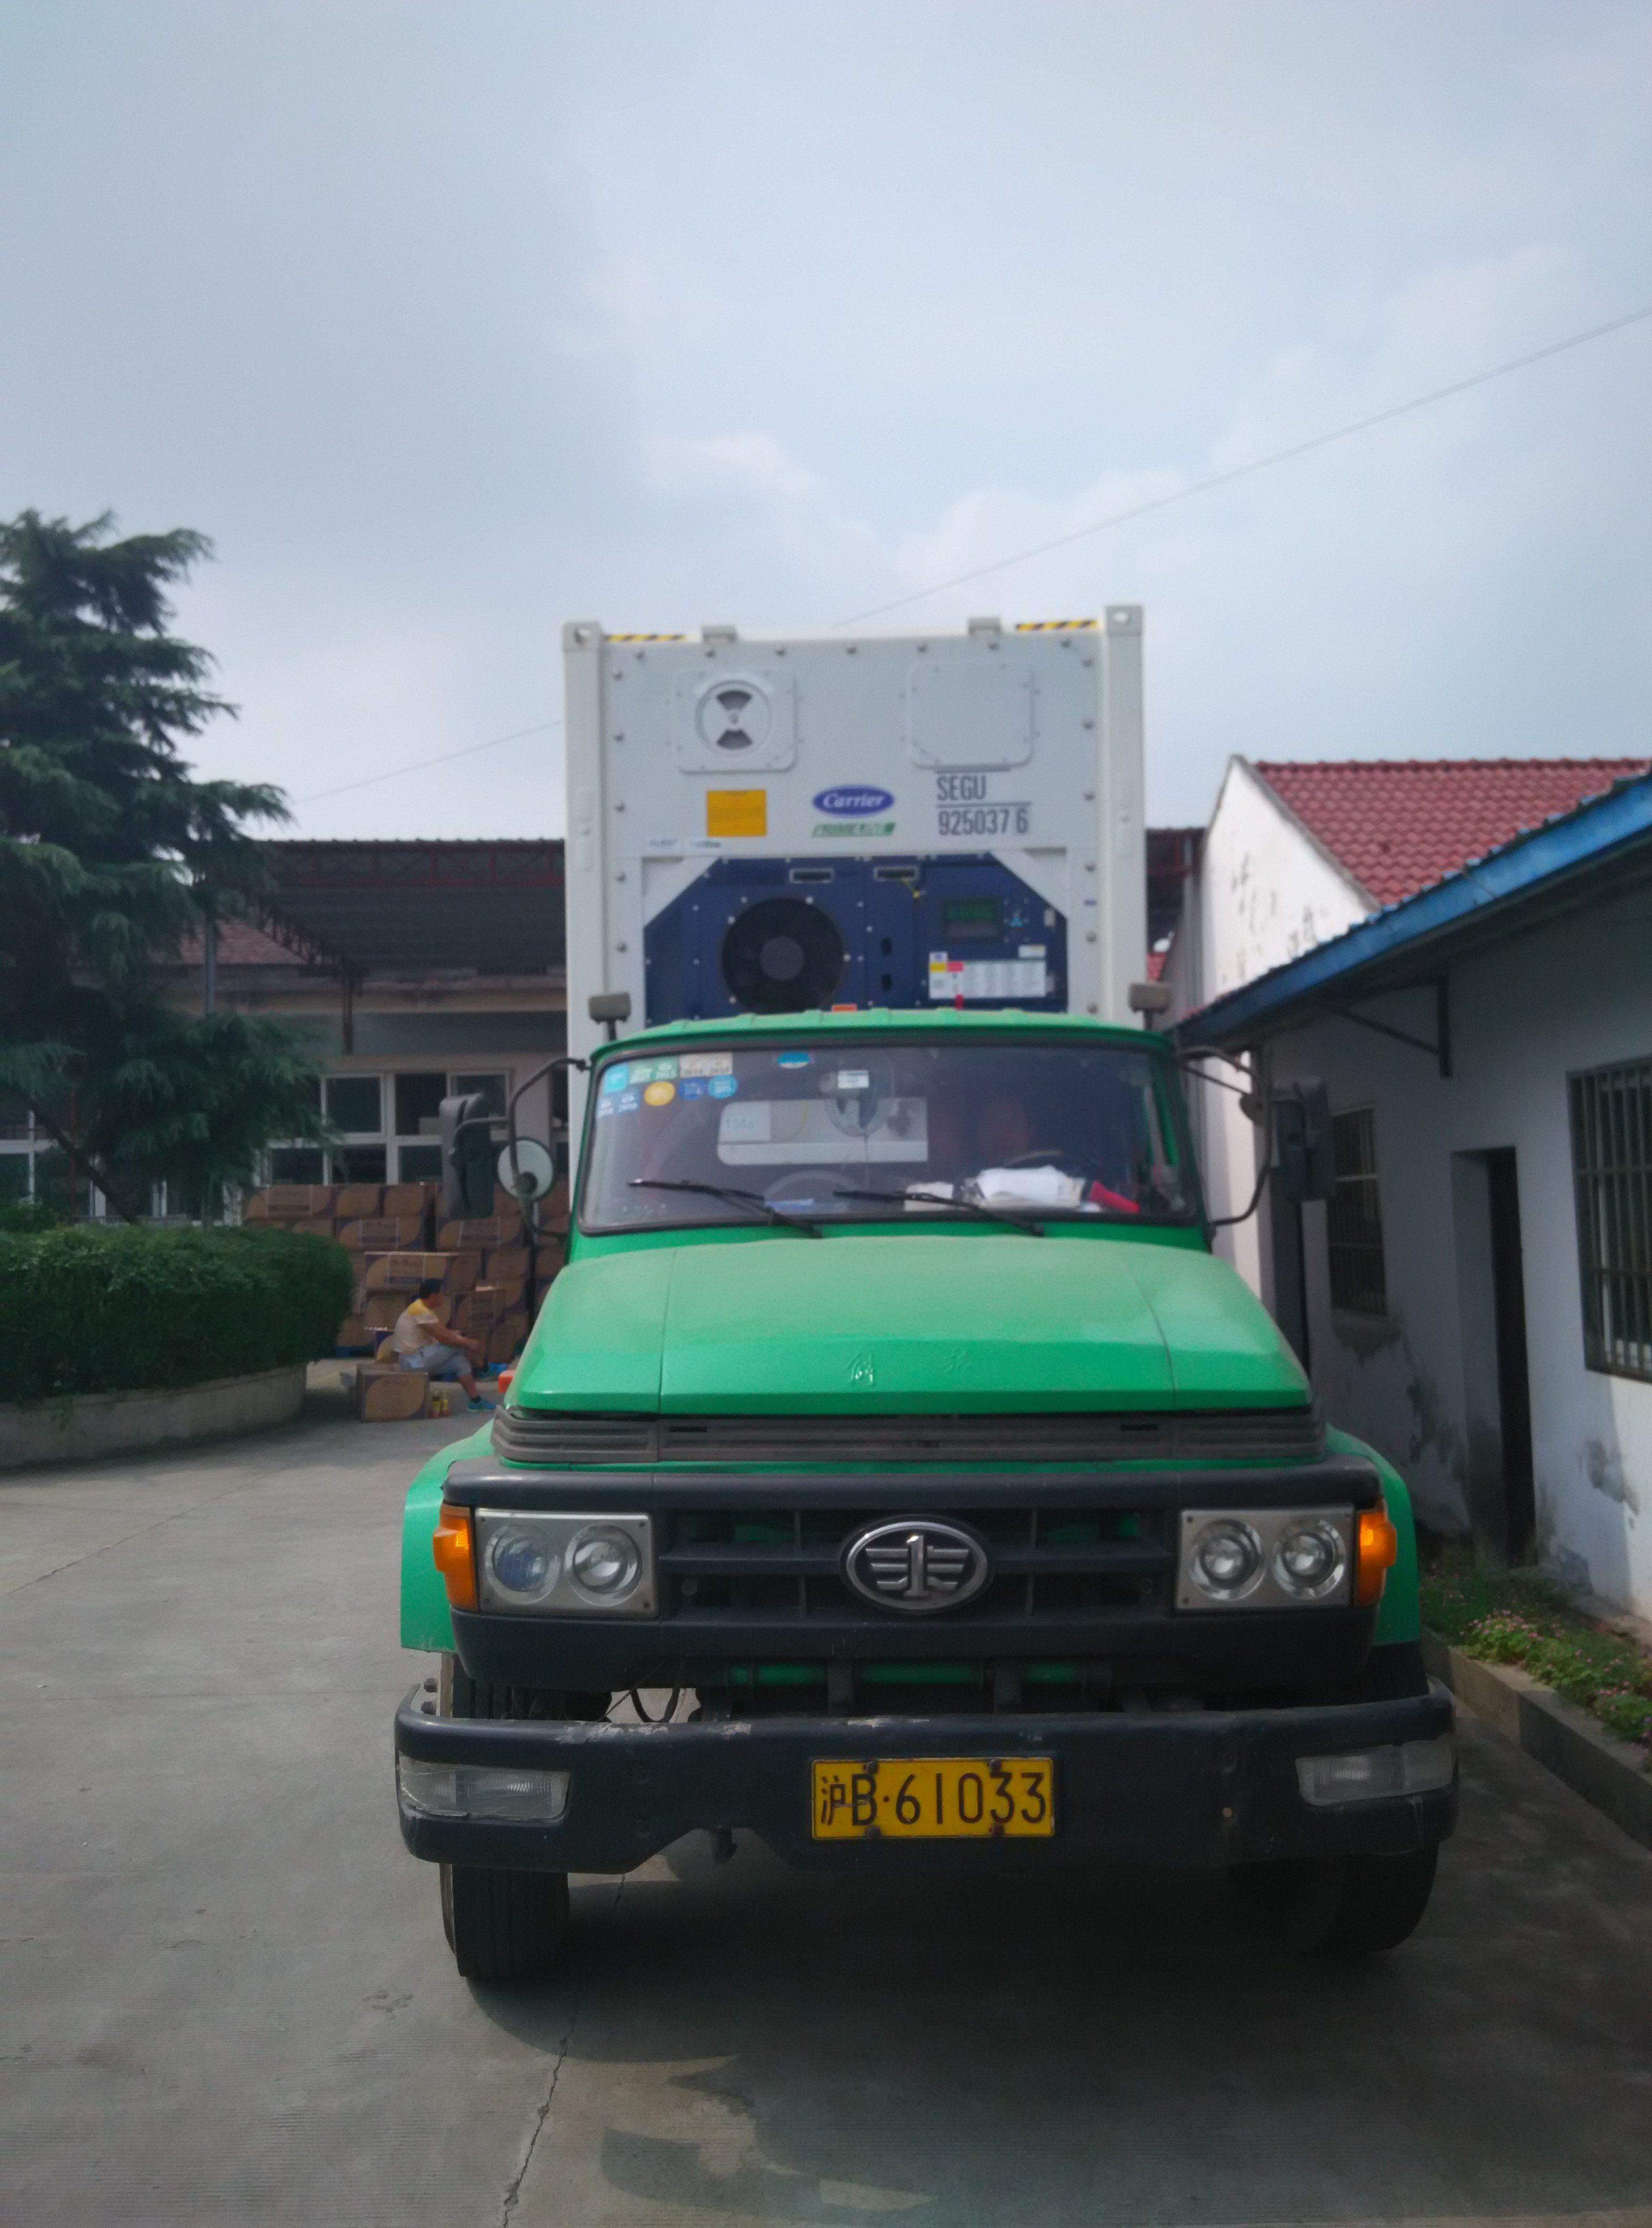 loading the second container for customer come from Chile   ride on toy manufacturer  chenyitomtomtom@gmail.com +86 130 3367 4290